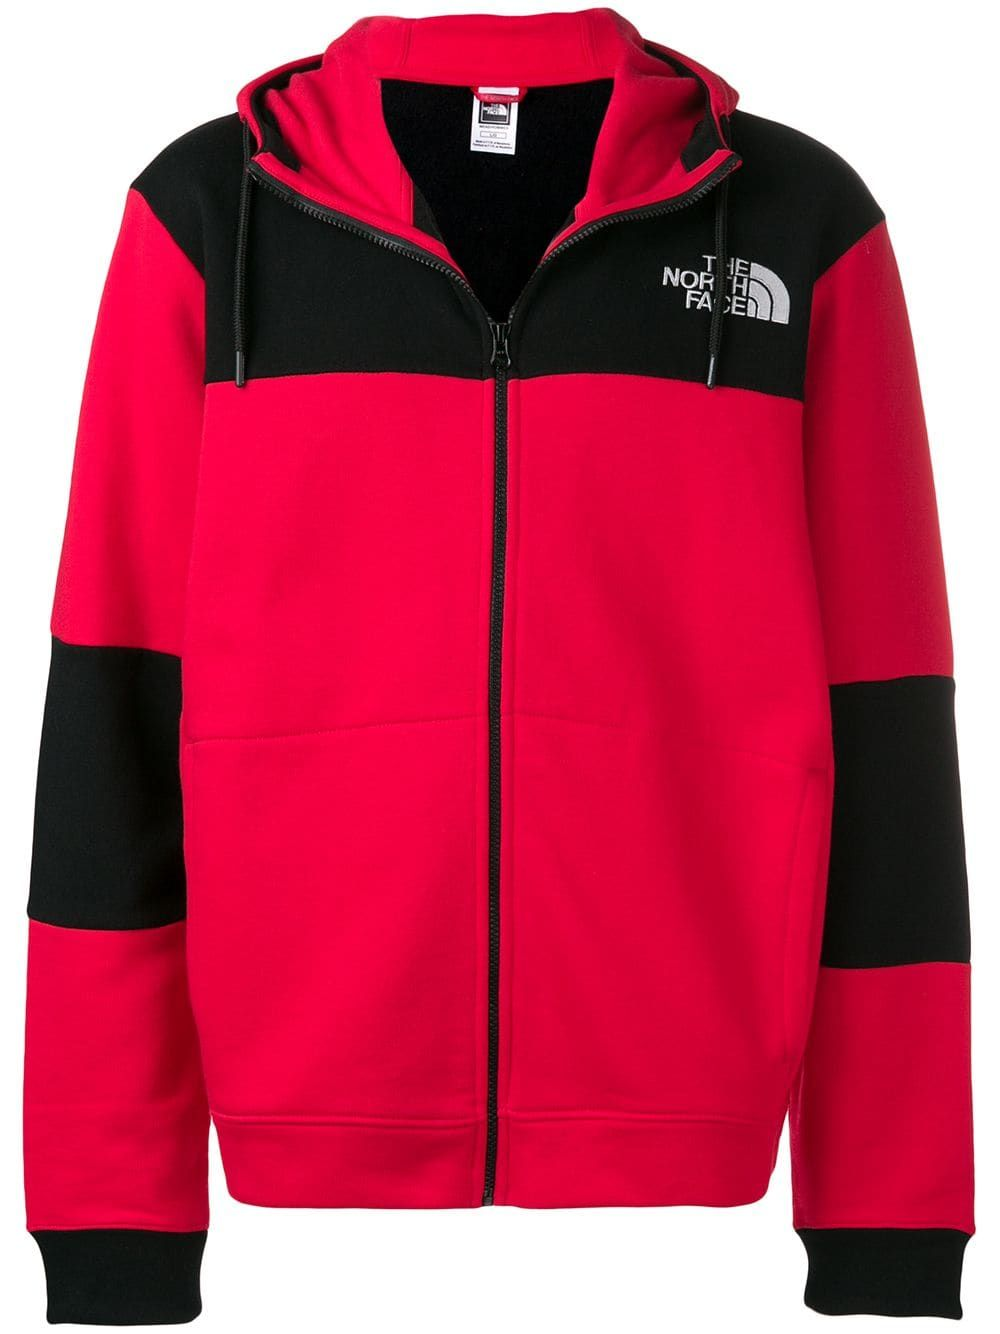 b98f7ccc3b14 THE NORTH FACE THE NORTH FACE HIMALAYA HOODIE - RED.  thenorthface  cloth